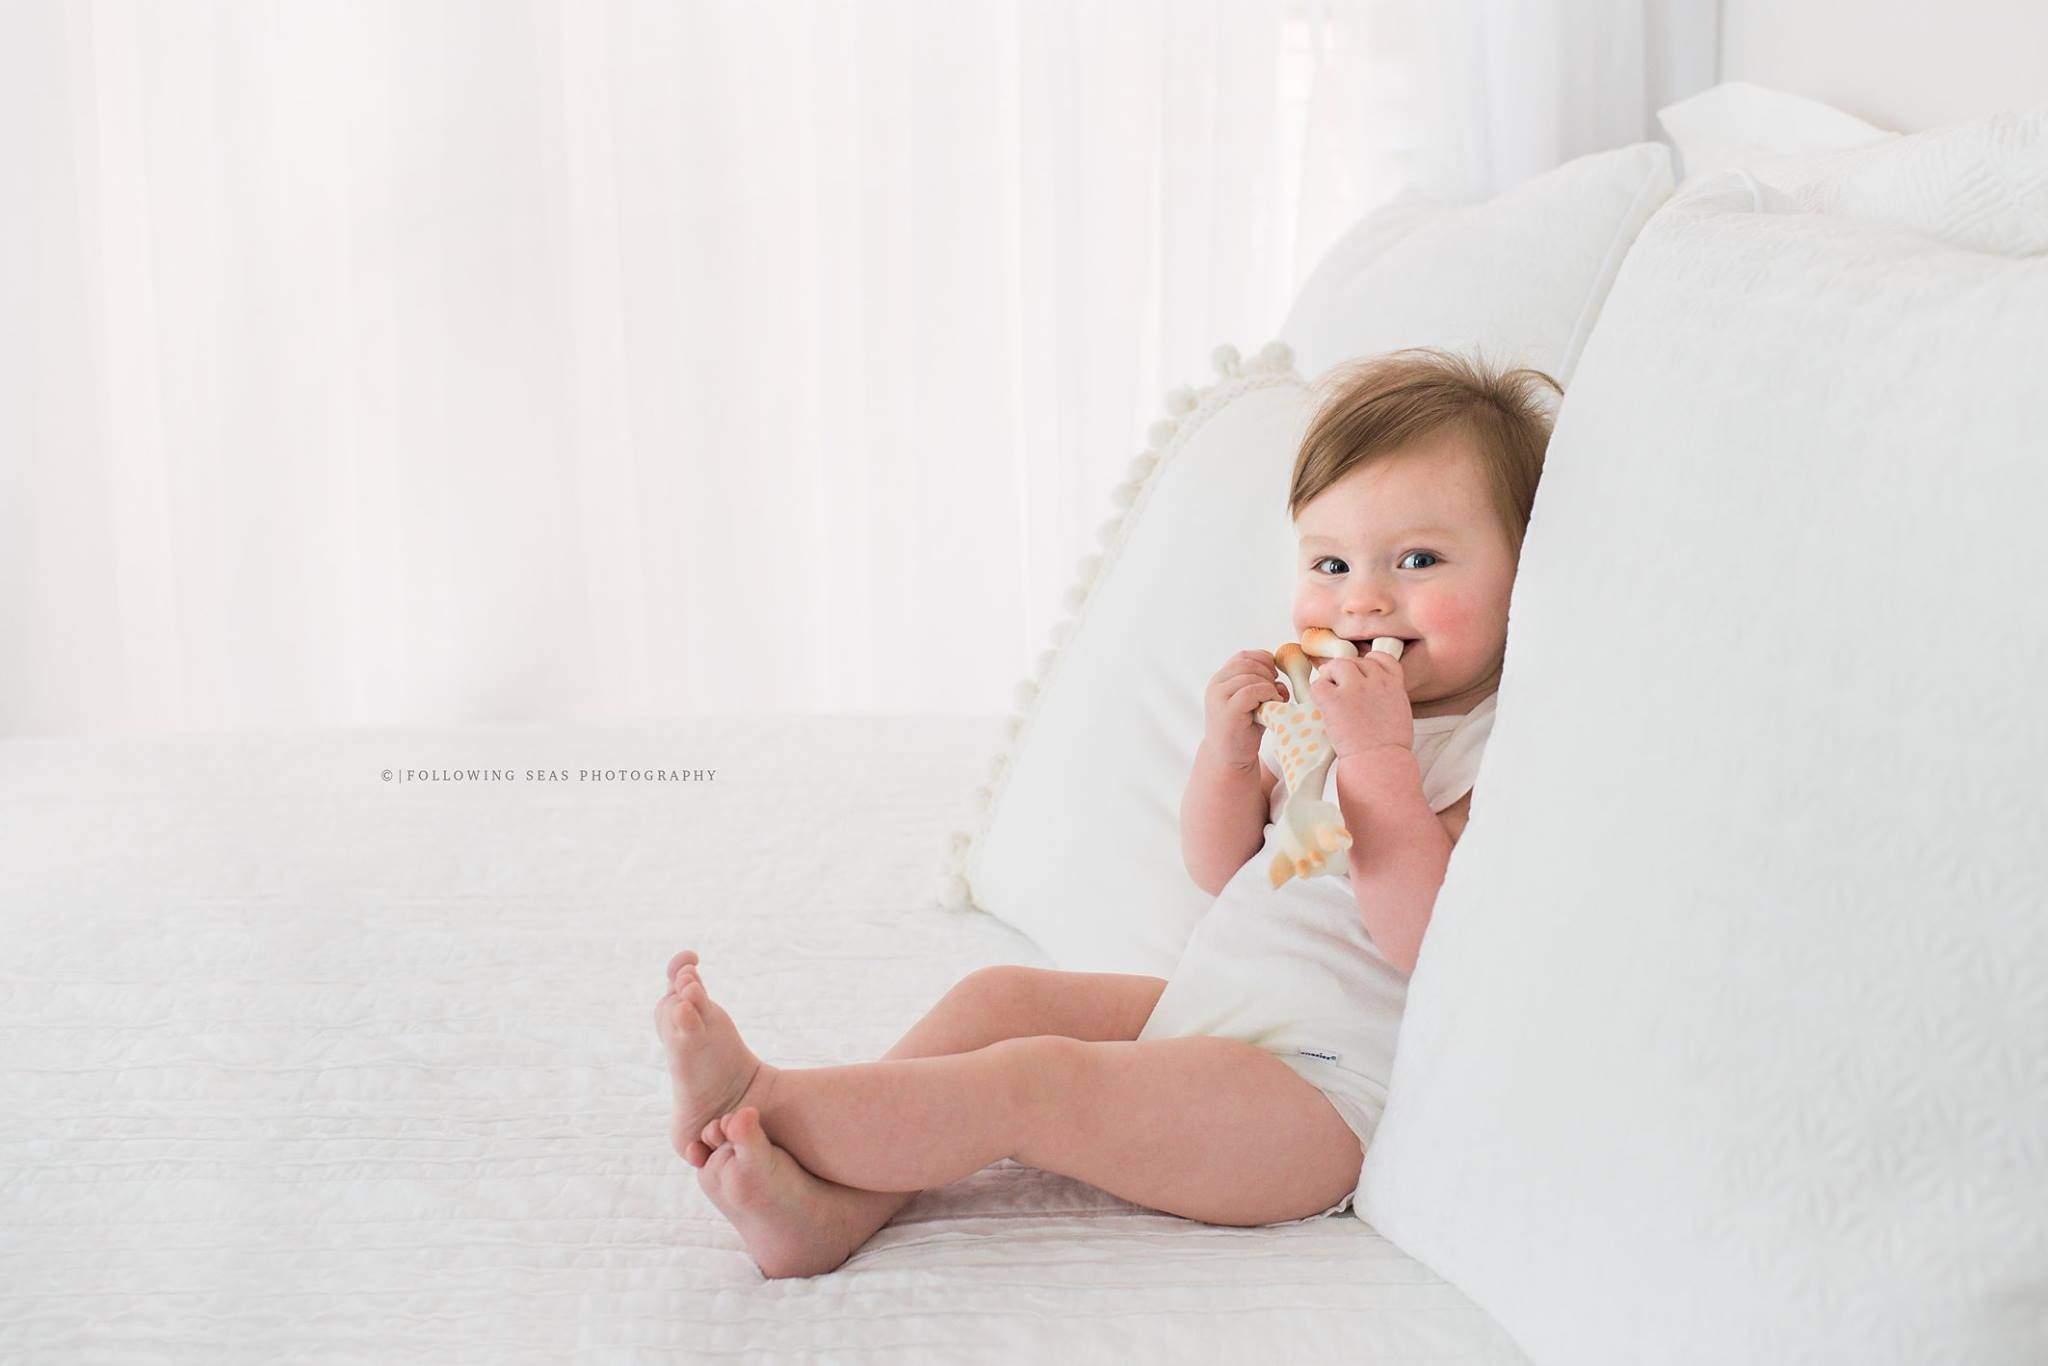 Following-Seas-Photography-Milestone-Baby-Sessions